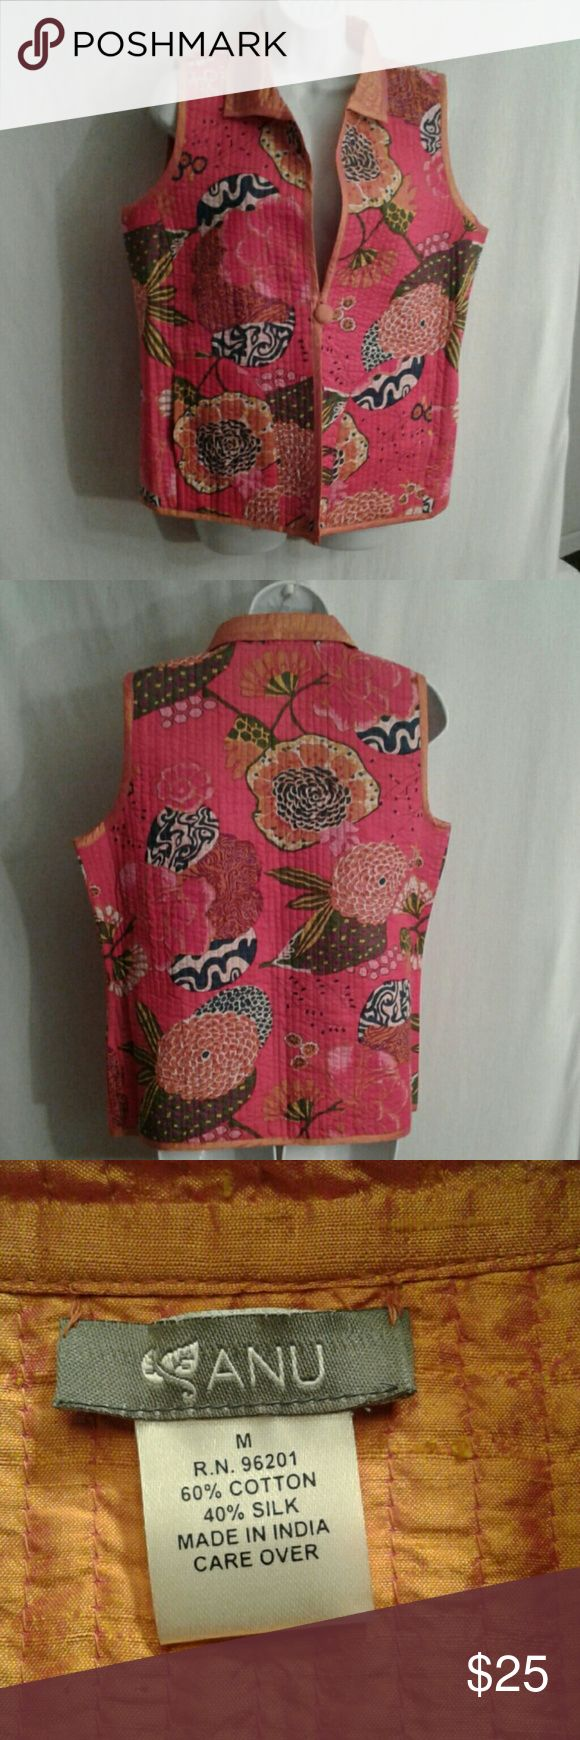 Anu quilted tropical sleeveless vest sz M This is a cotton vest lined and trimmed in silk. It has a single, silk- covered, front button closure. The vivid floral print is in shades of hot pink, orange, purple, green, and yellow. The vertical quilting is very figure- flattering. Anu Jackets & Coats Vests